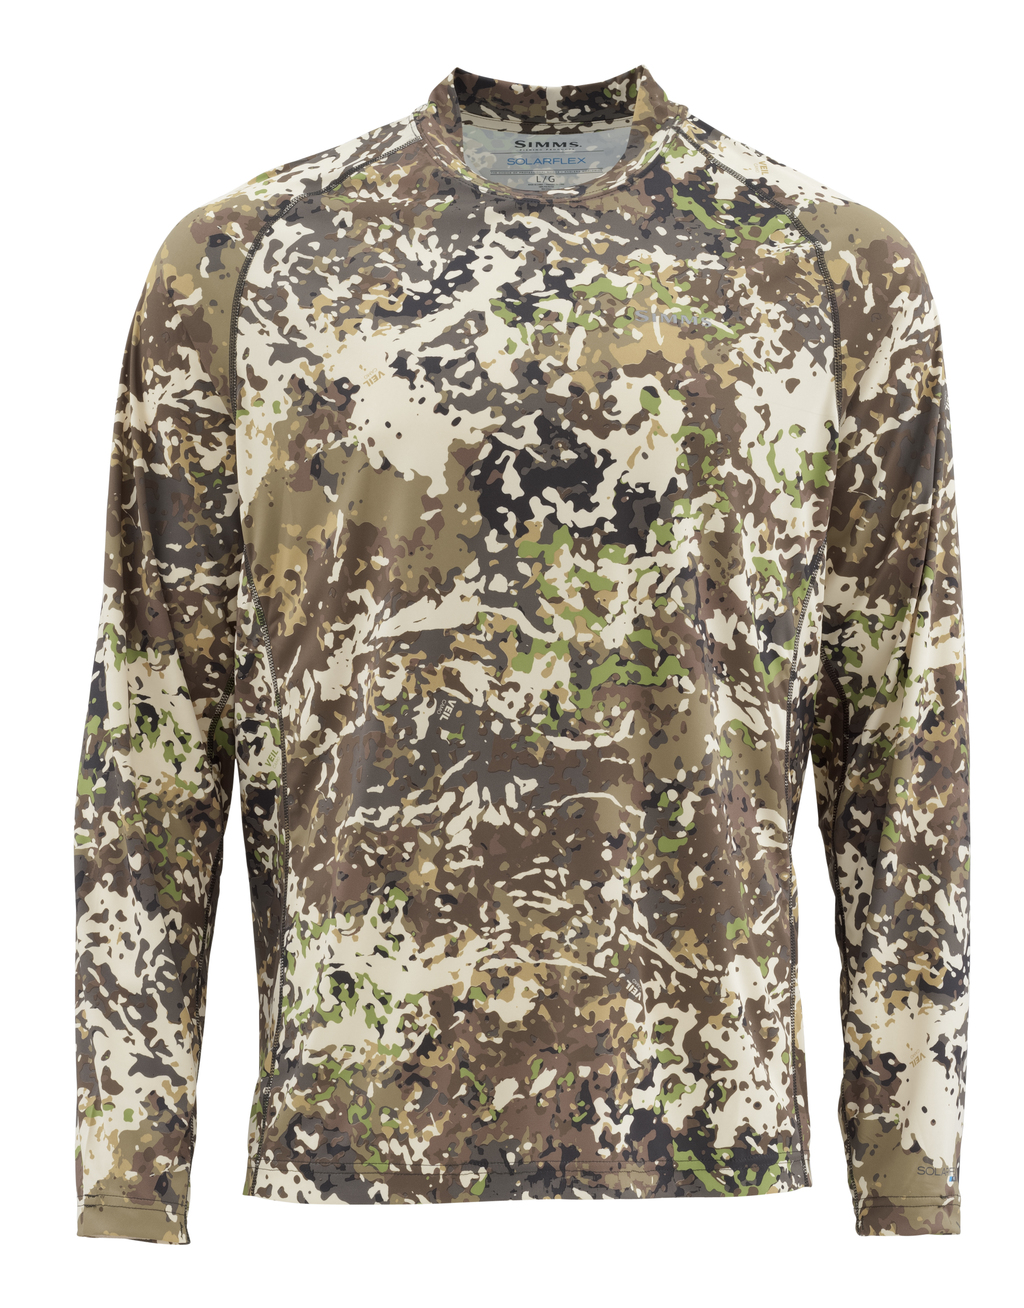 344302b3 Simms Solarflex LS Crew Graphic Prints Shirt river camo | Longsleeves |  Shirts and Pullovers | Clothing | adh-fishing